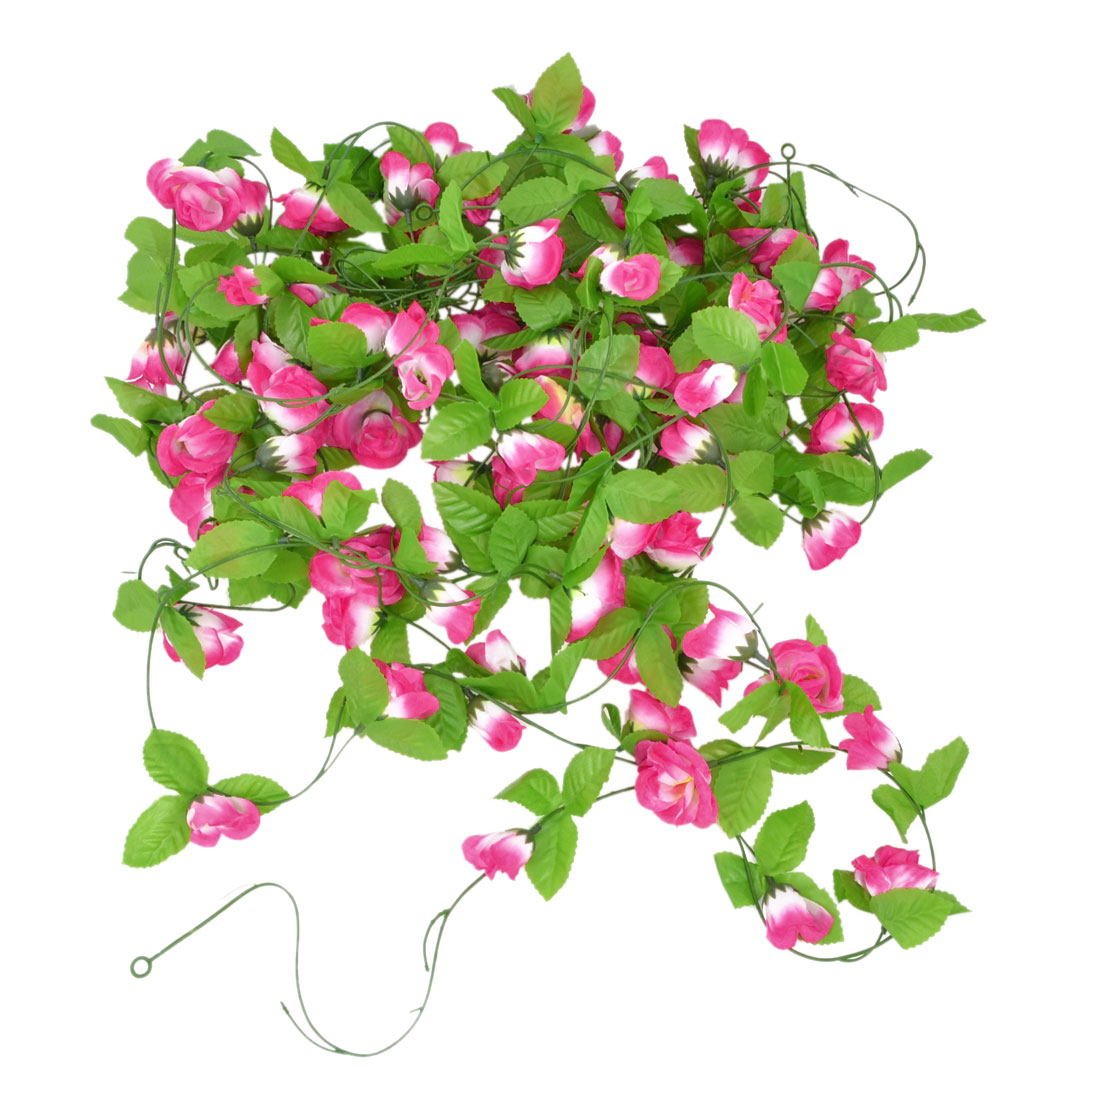 5 Pcs Artificial Green Leaf Fuchsia Rose Flower Hanging Vine Decoration